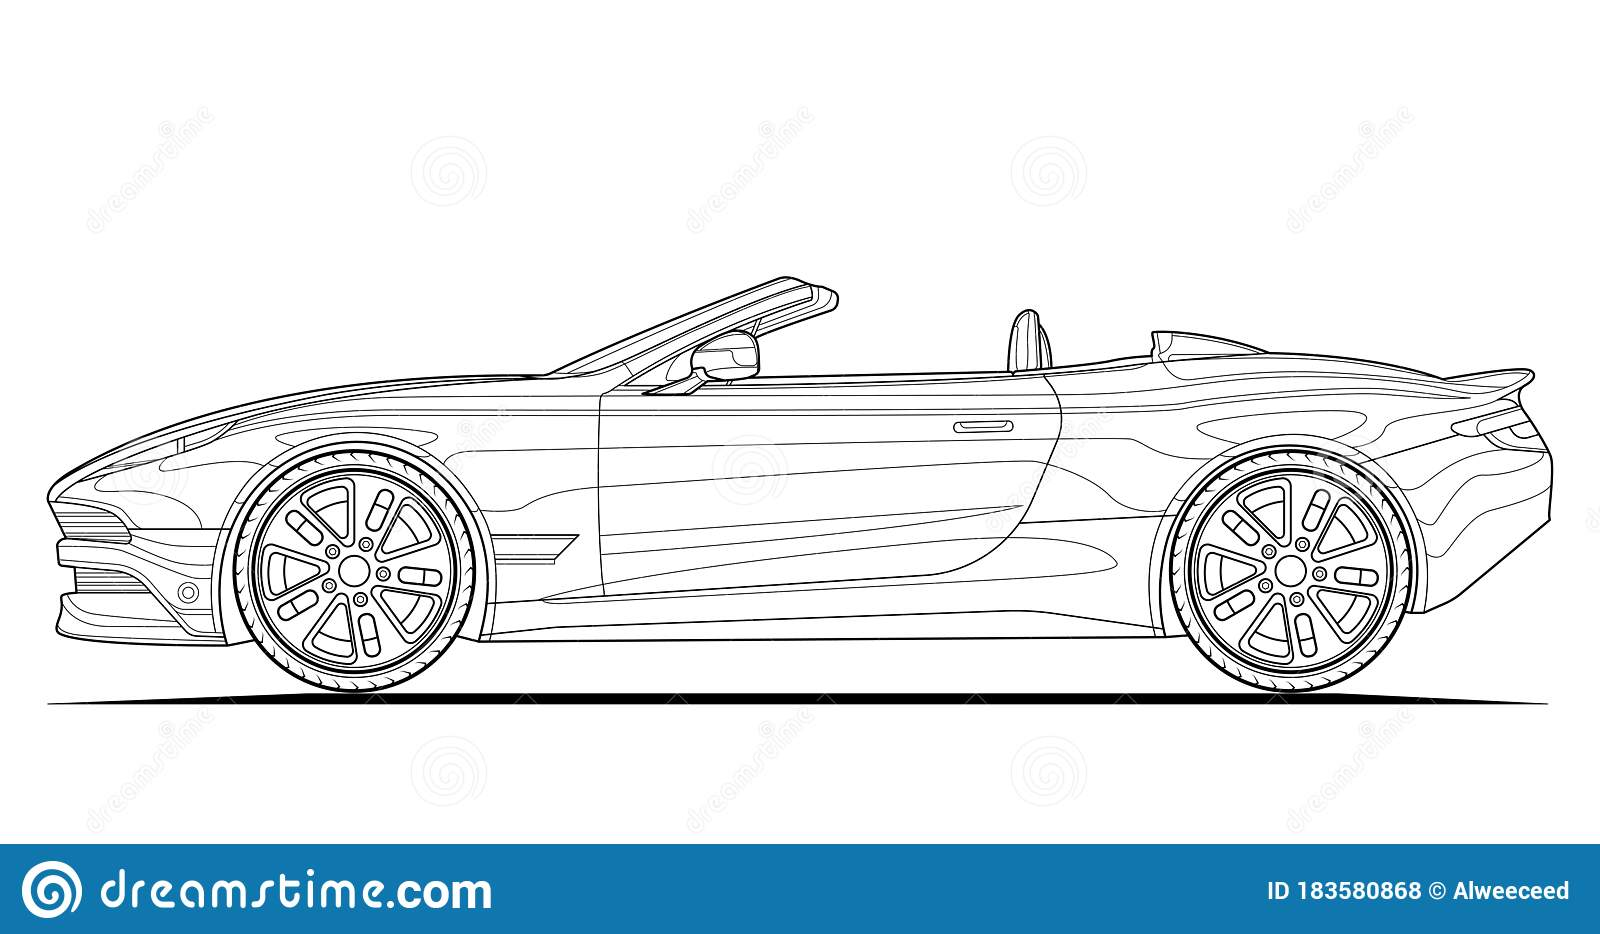 Classic Convertible Car Coloring Page   Free Printable Coloring ...   934x1600